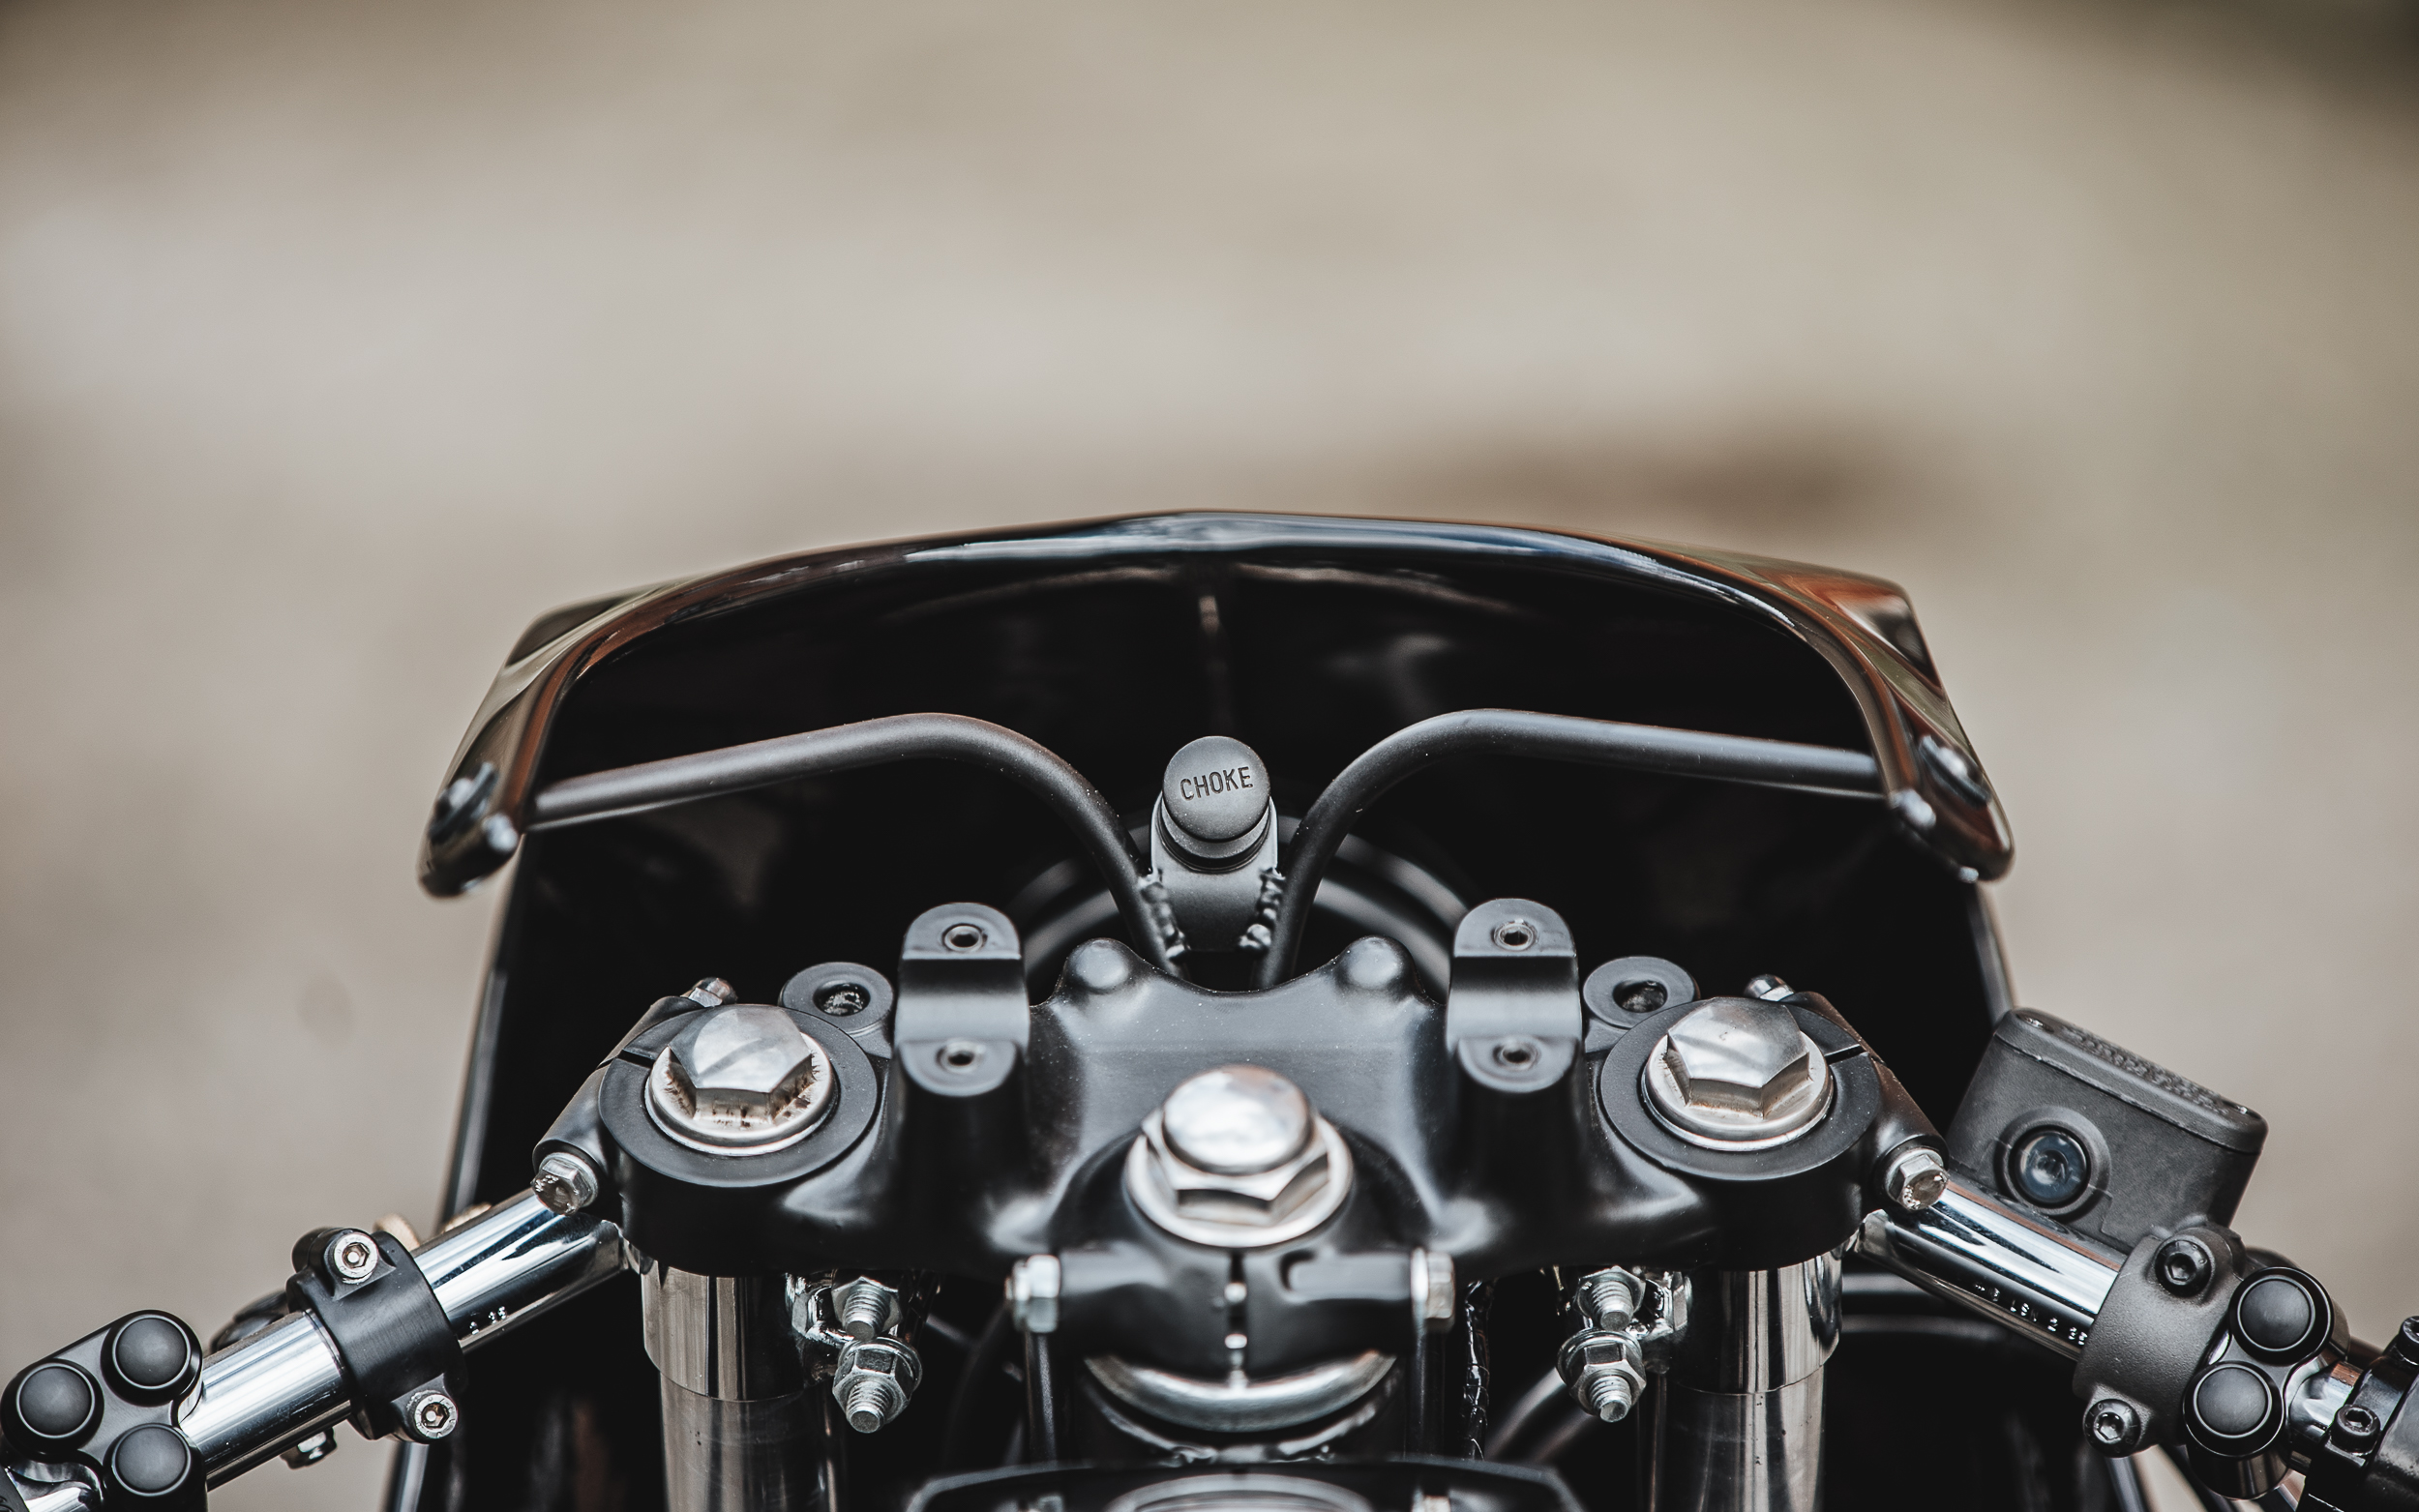 Hookie Co. CB550 cockpit